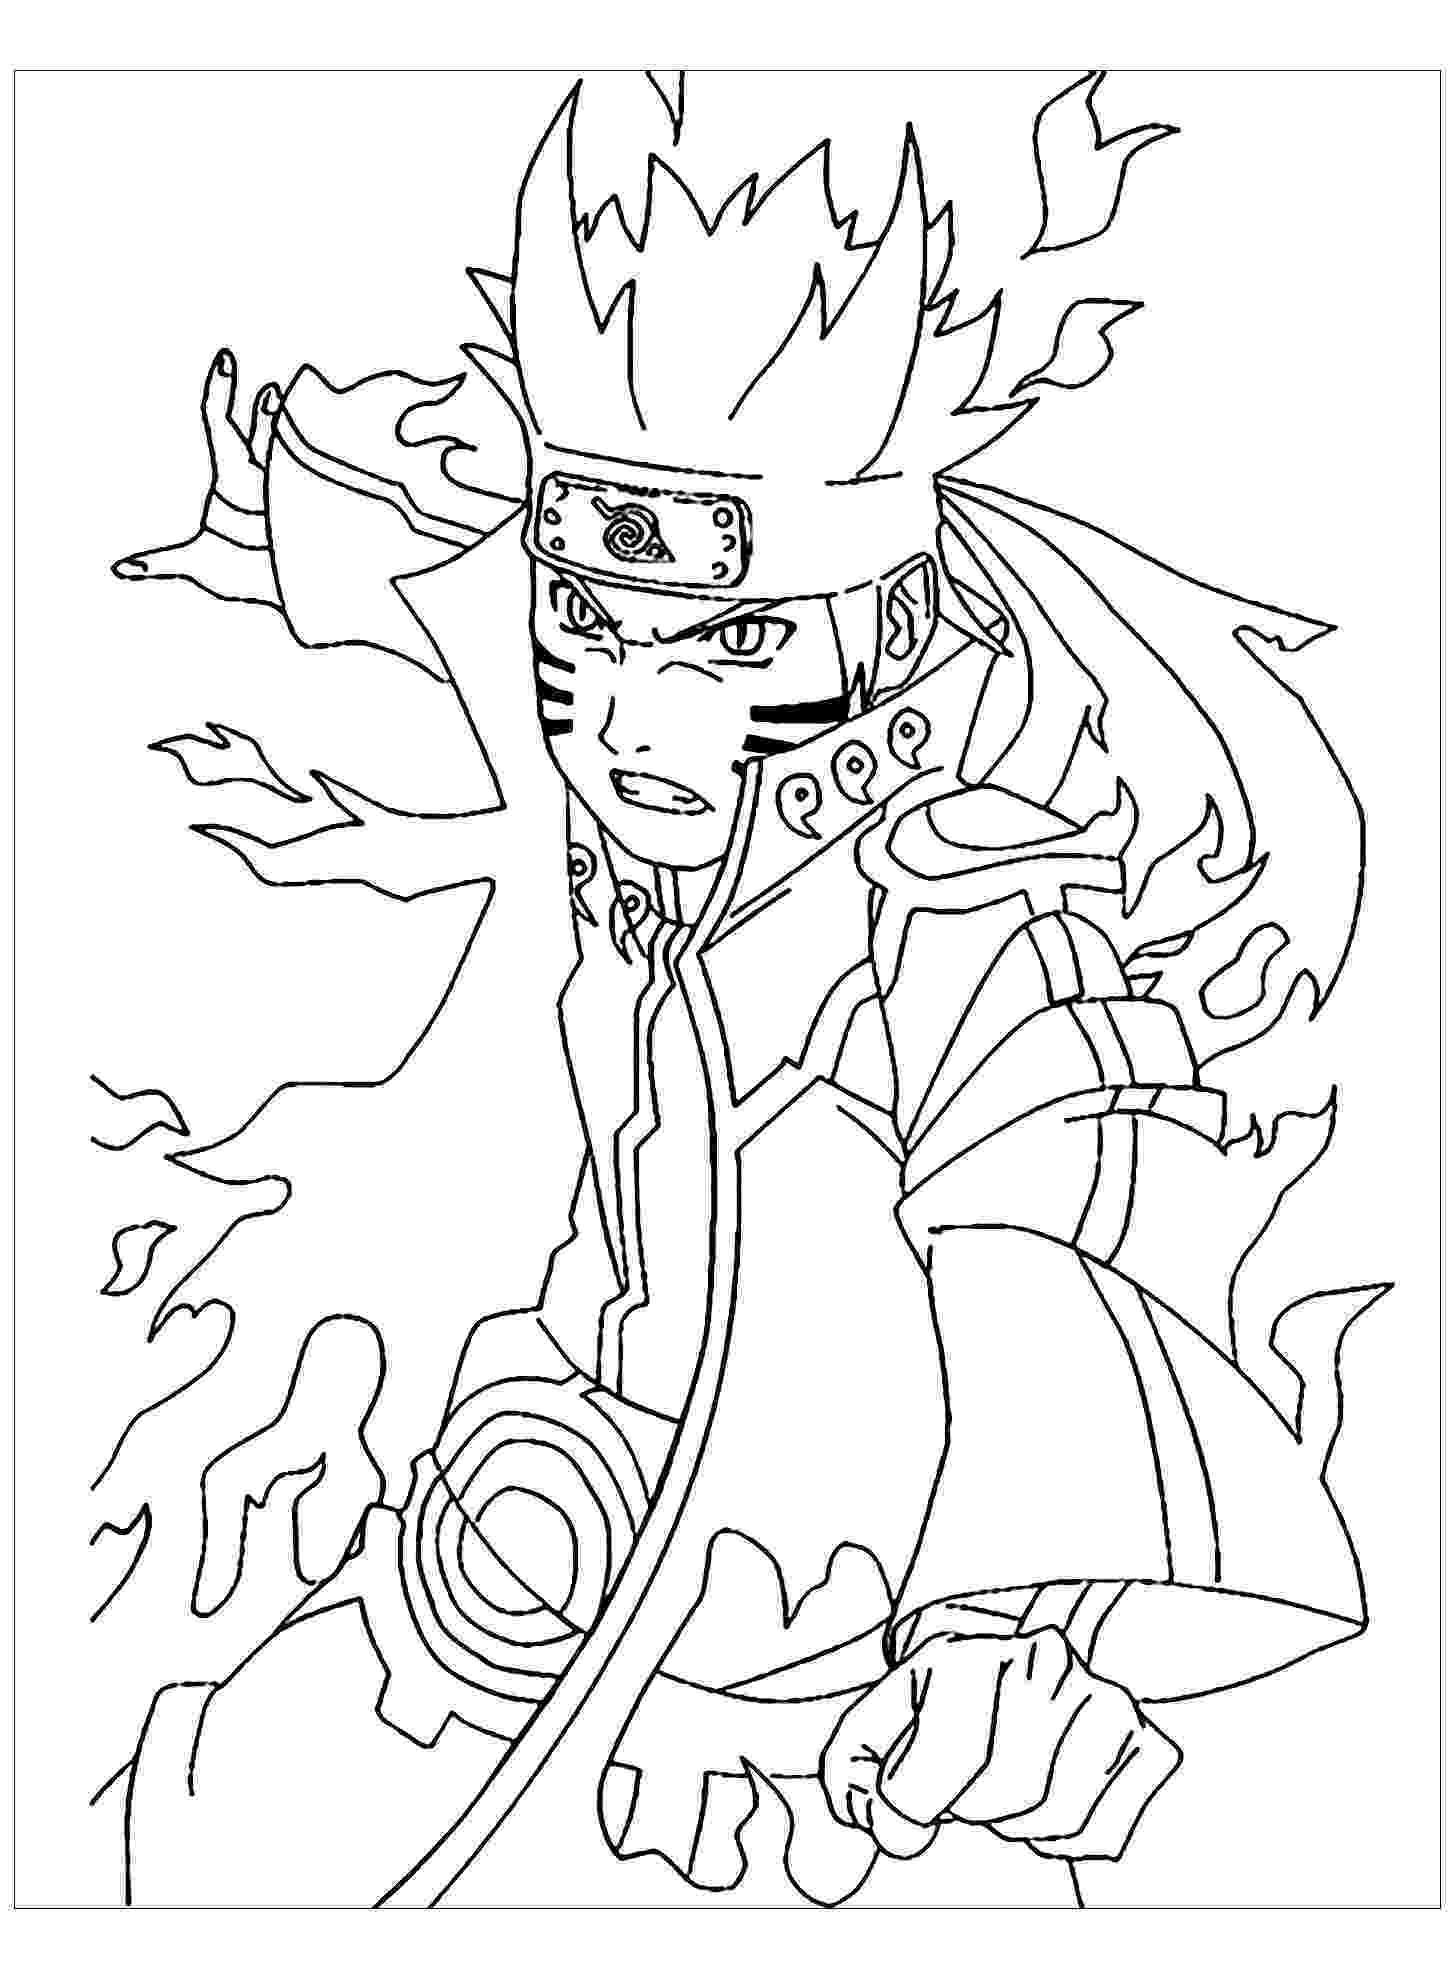 naruto color pages free printable naruto coloring pages pages color naruto